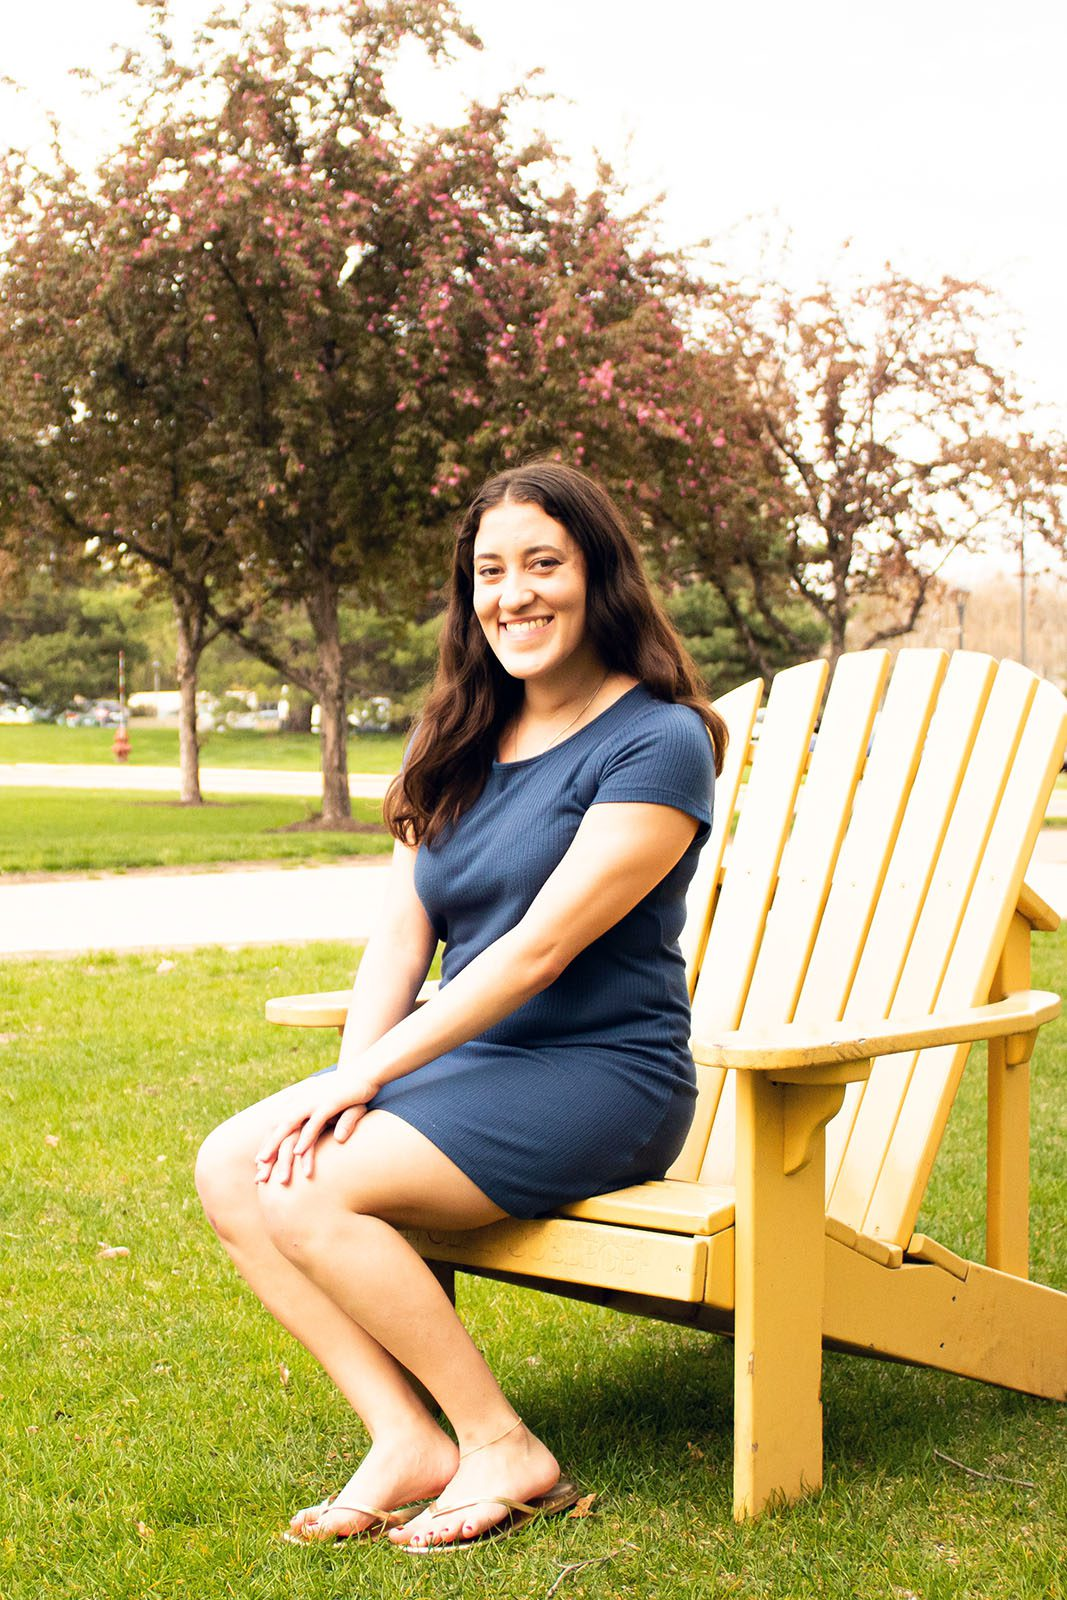 Portrait of Allyvia Garza on a yellow adirondack chair with trees in the background.